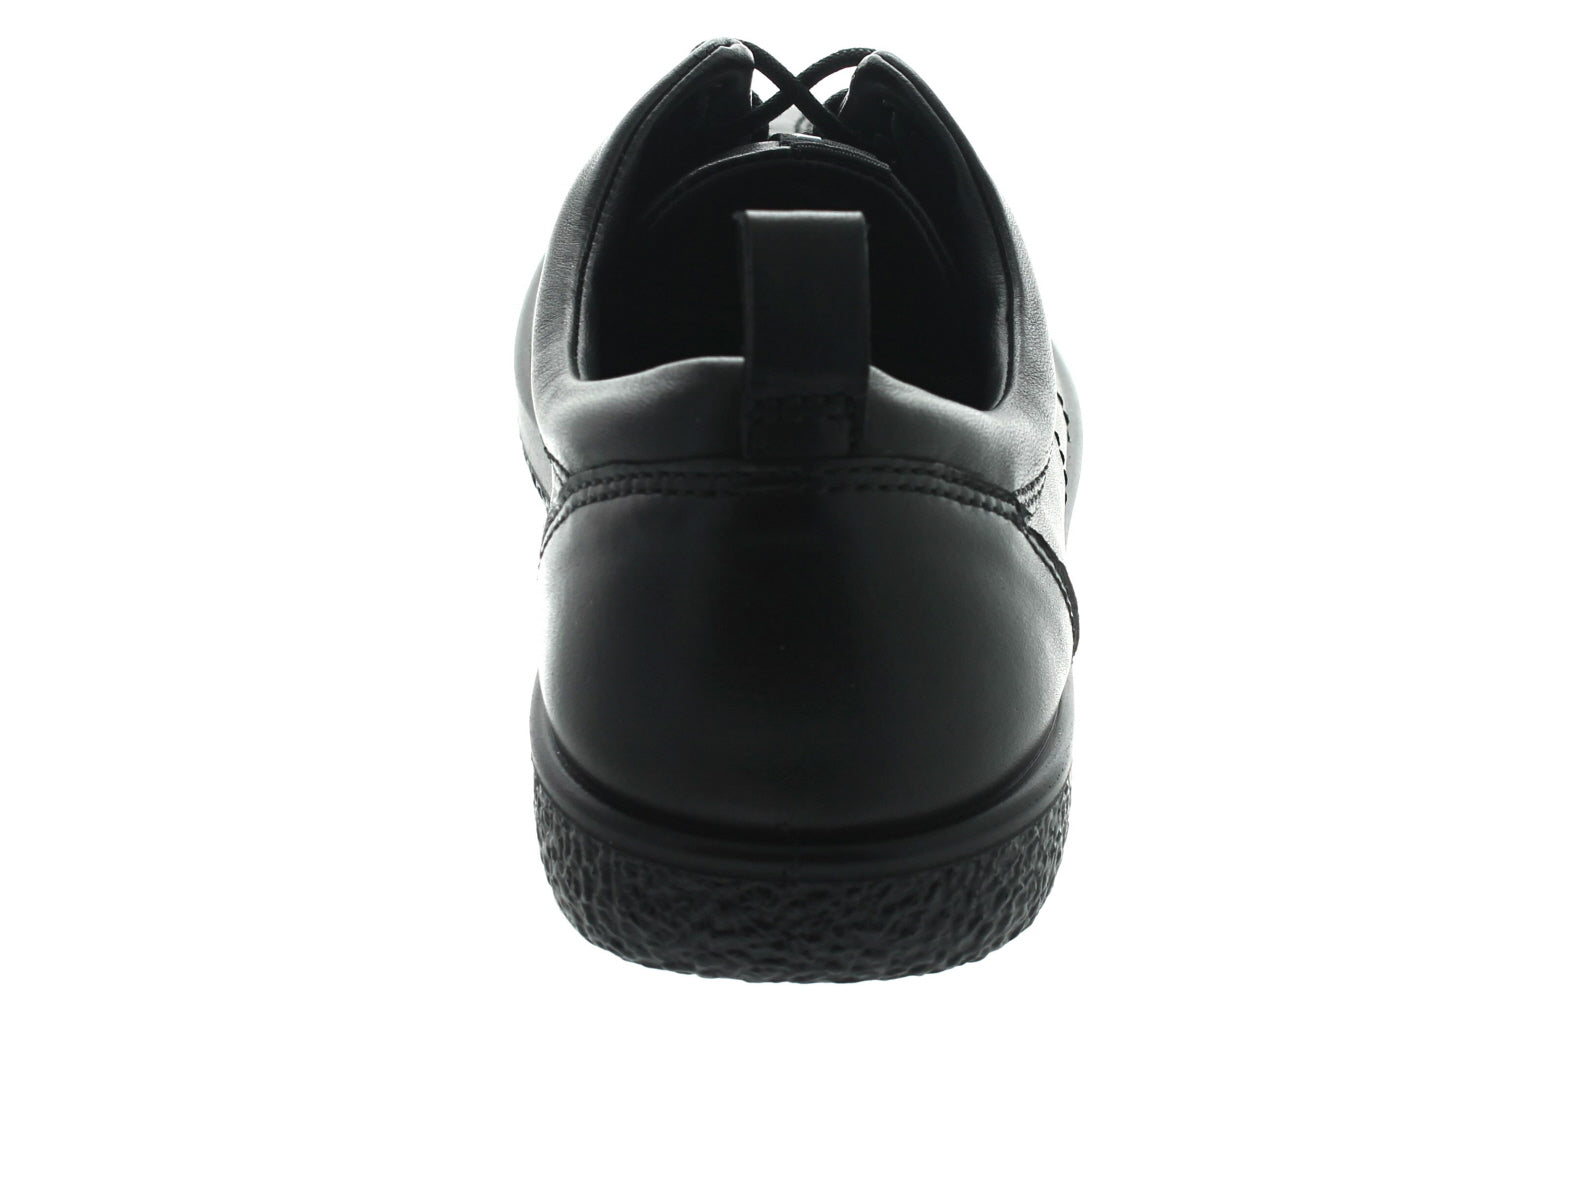 Ecco Soft 1 400503 in Black back view